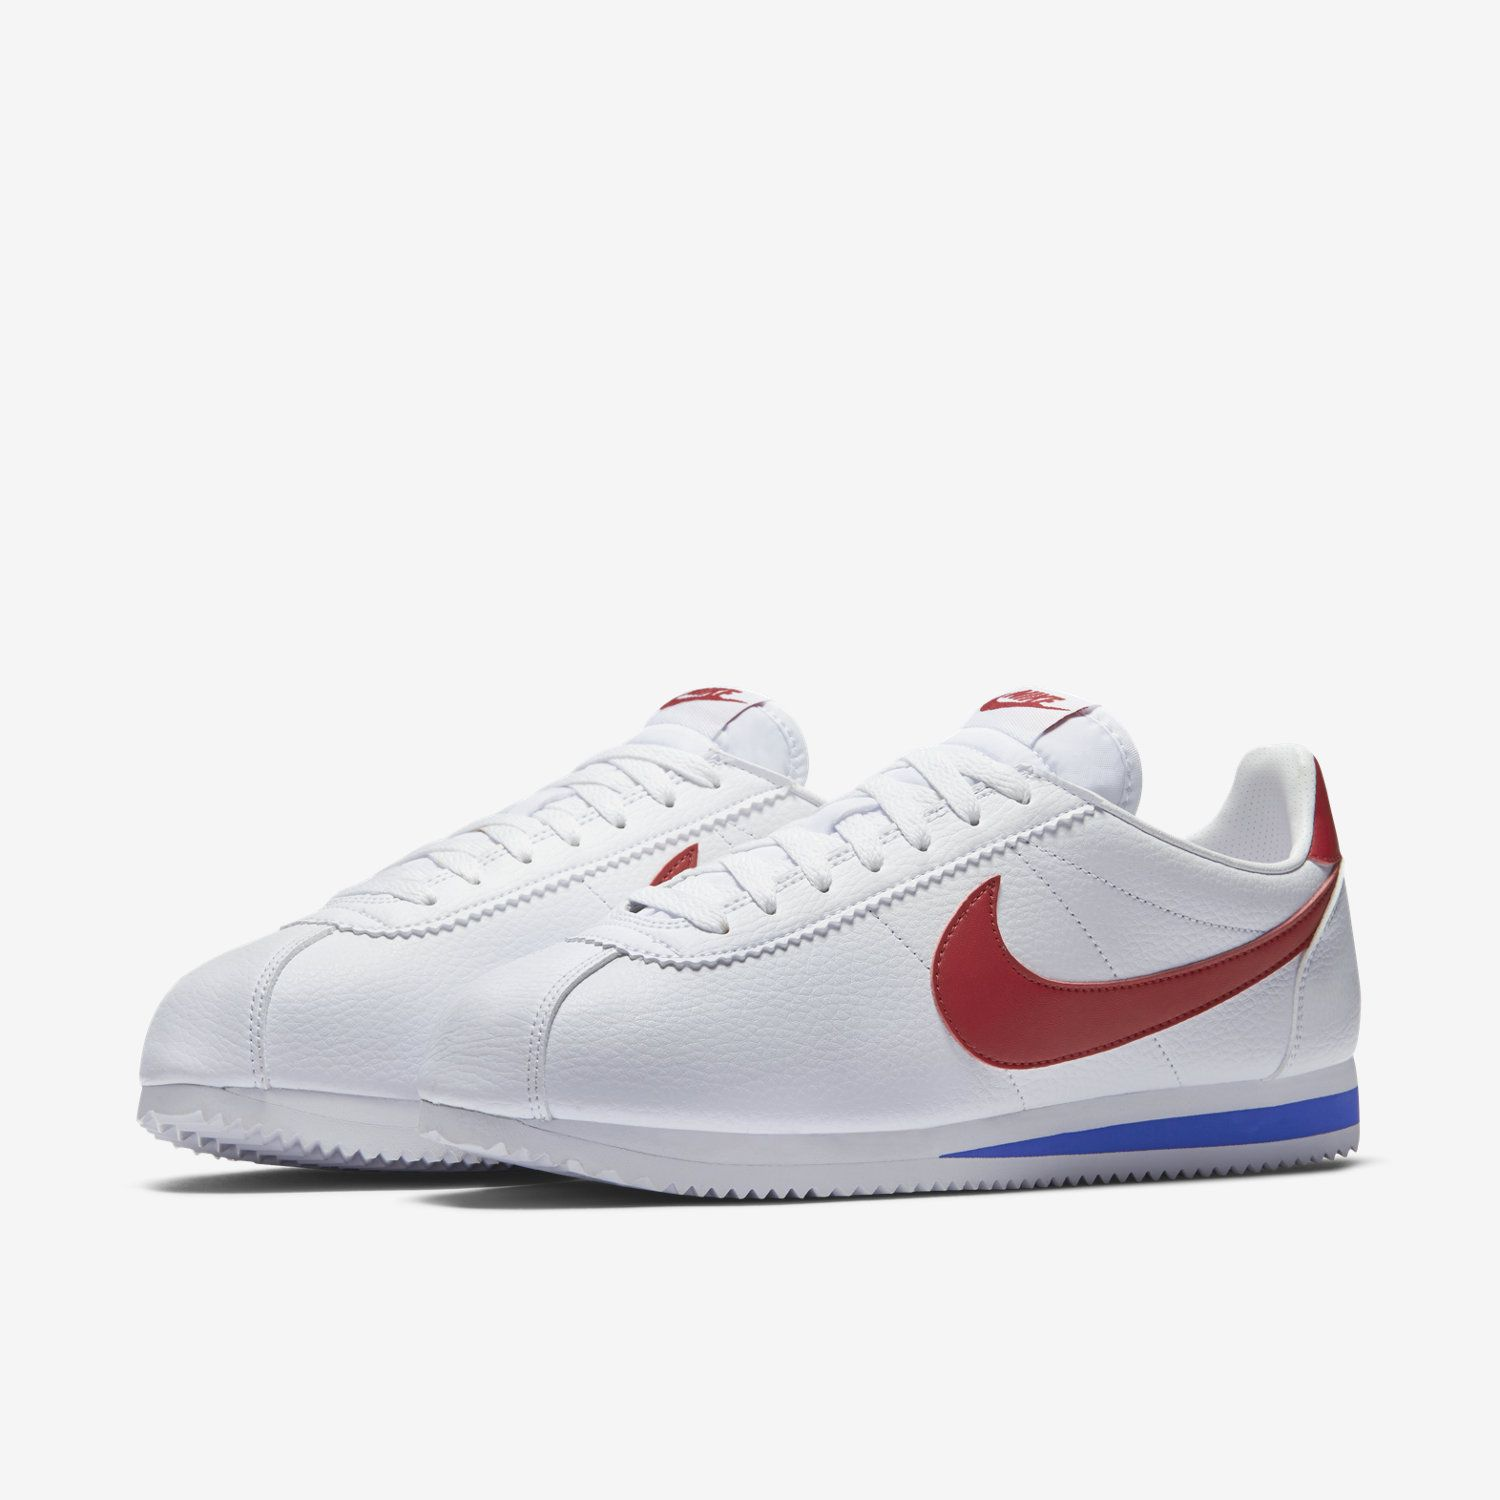 Nike Classic Cortez Leather, Nike Cortez, Red, Leather Shoes, Usa La,  Adidas, Leather Dress Shoes